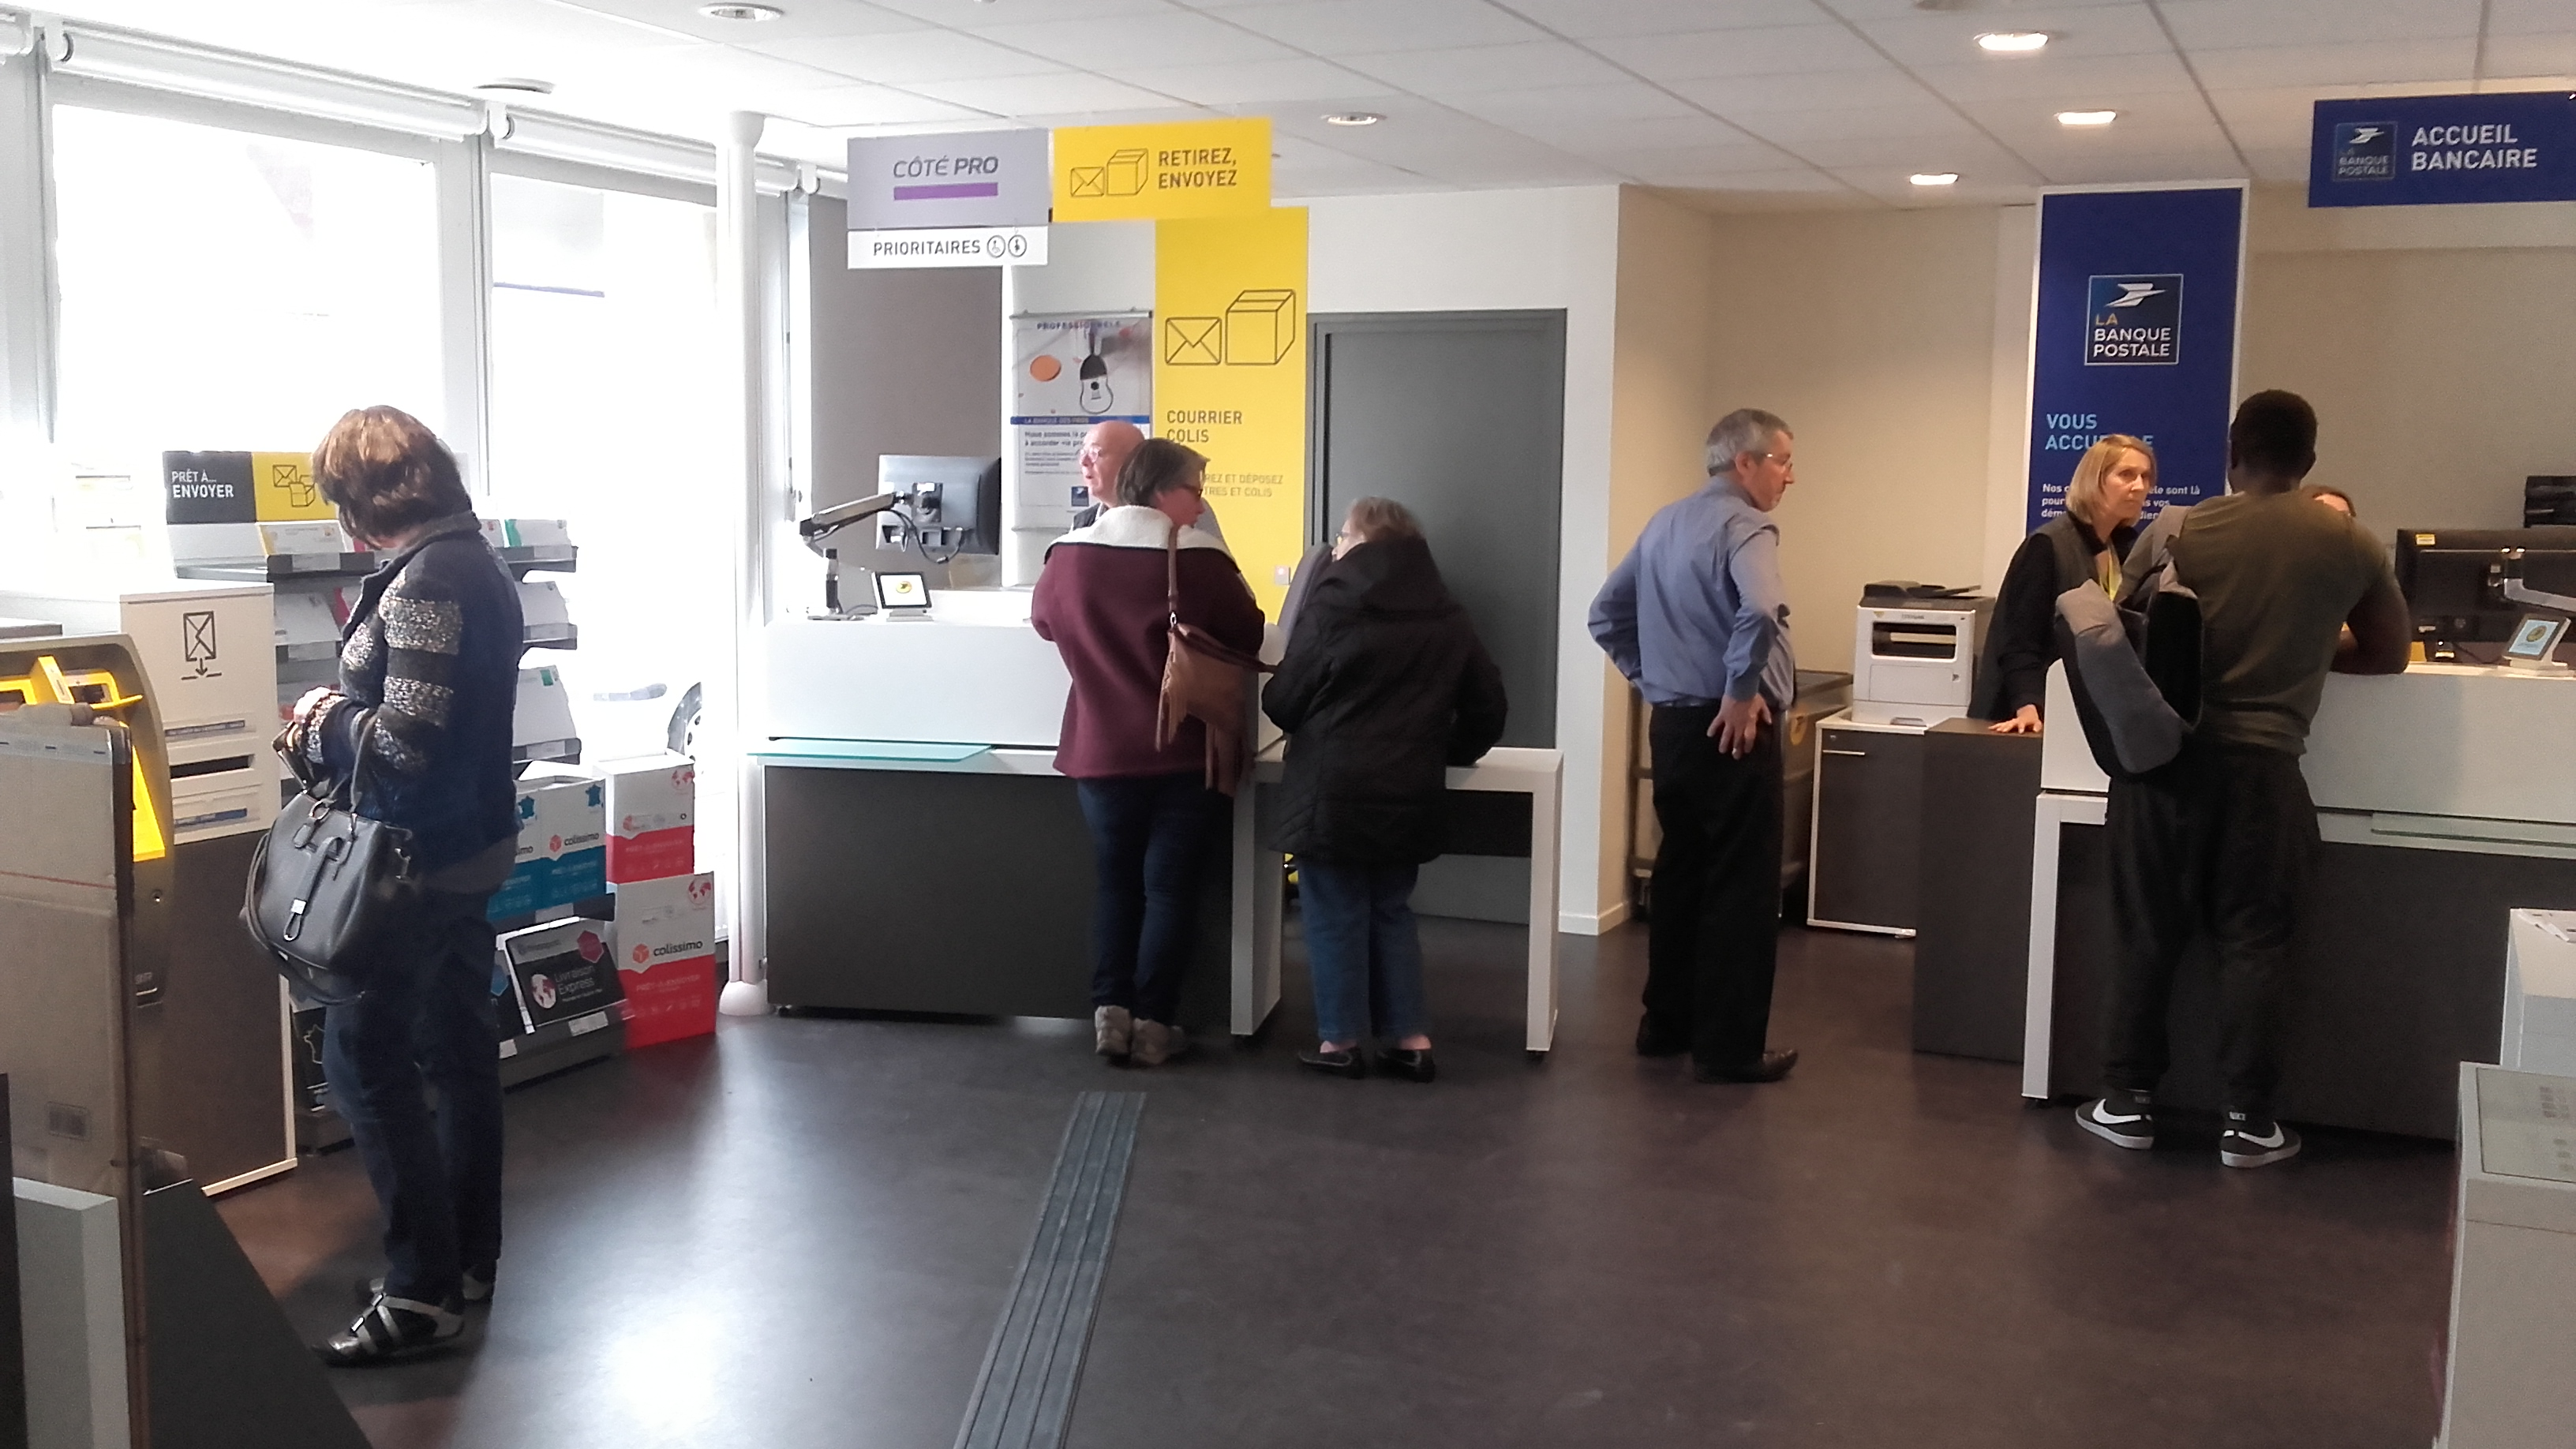 Recently reopened post office in Vitry-en-Artois